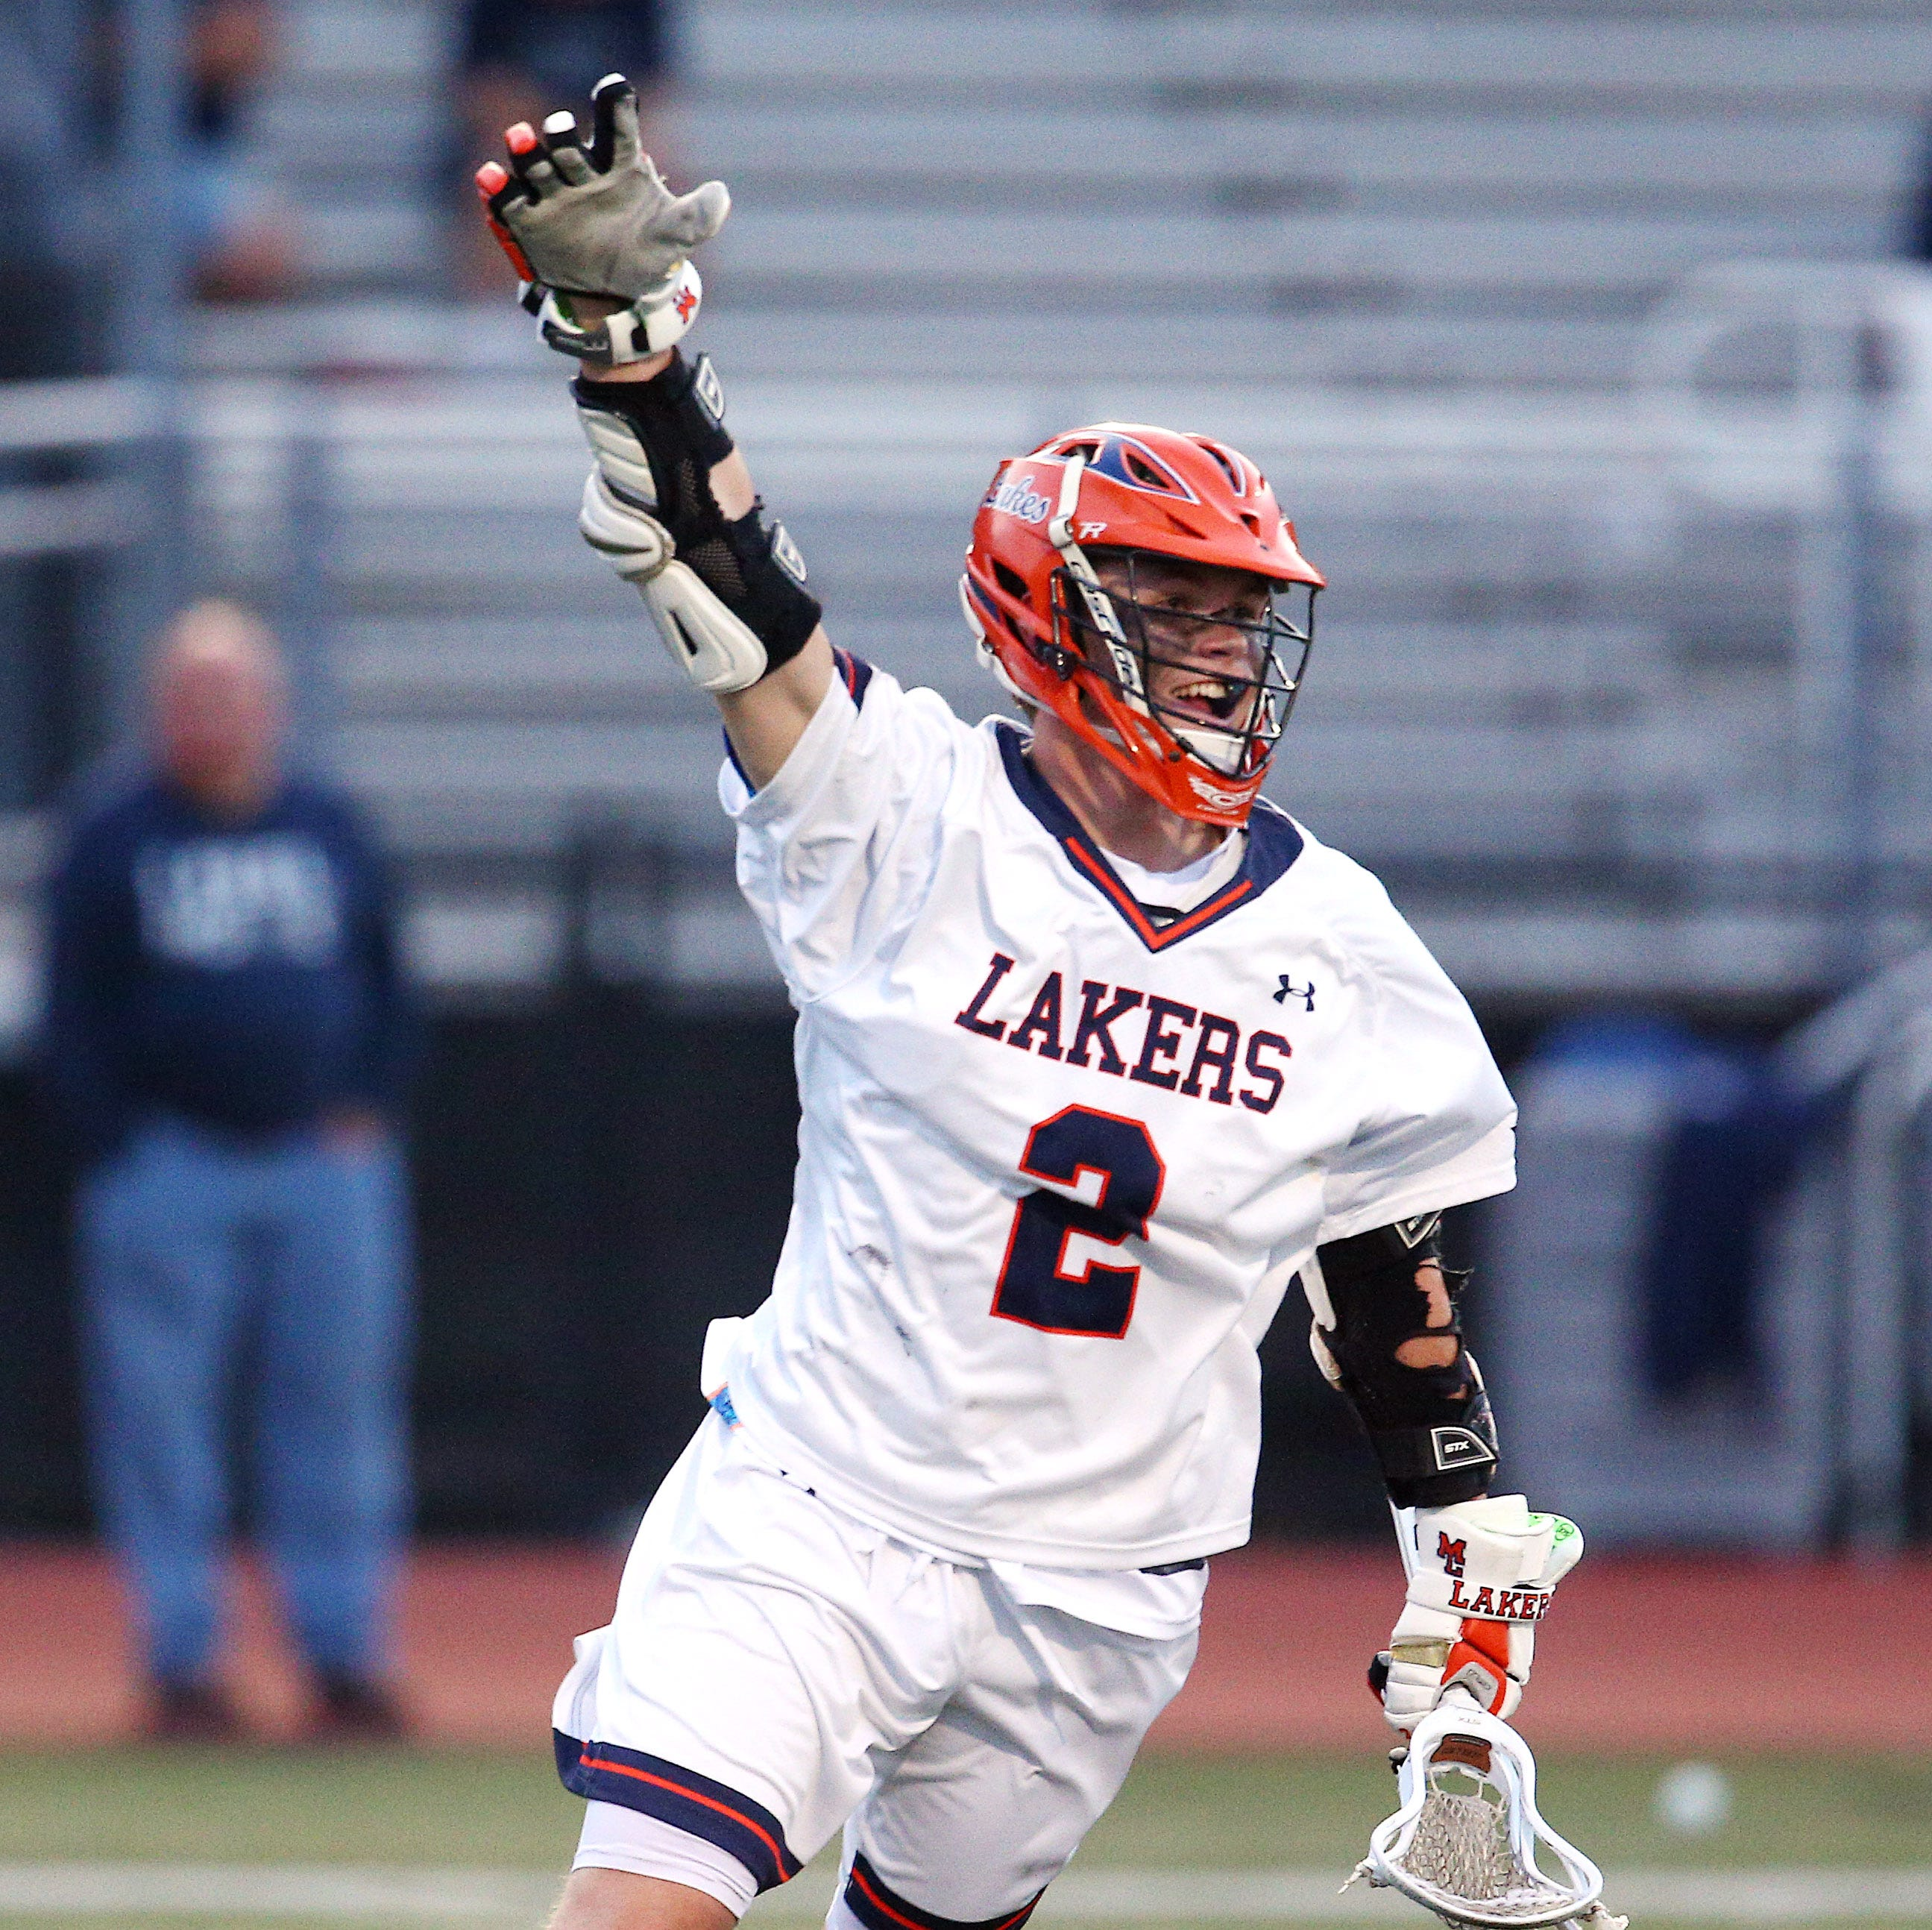 NJSIAA boys lacrosse tournament brackets